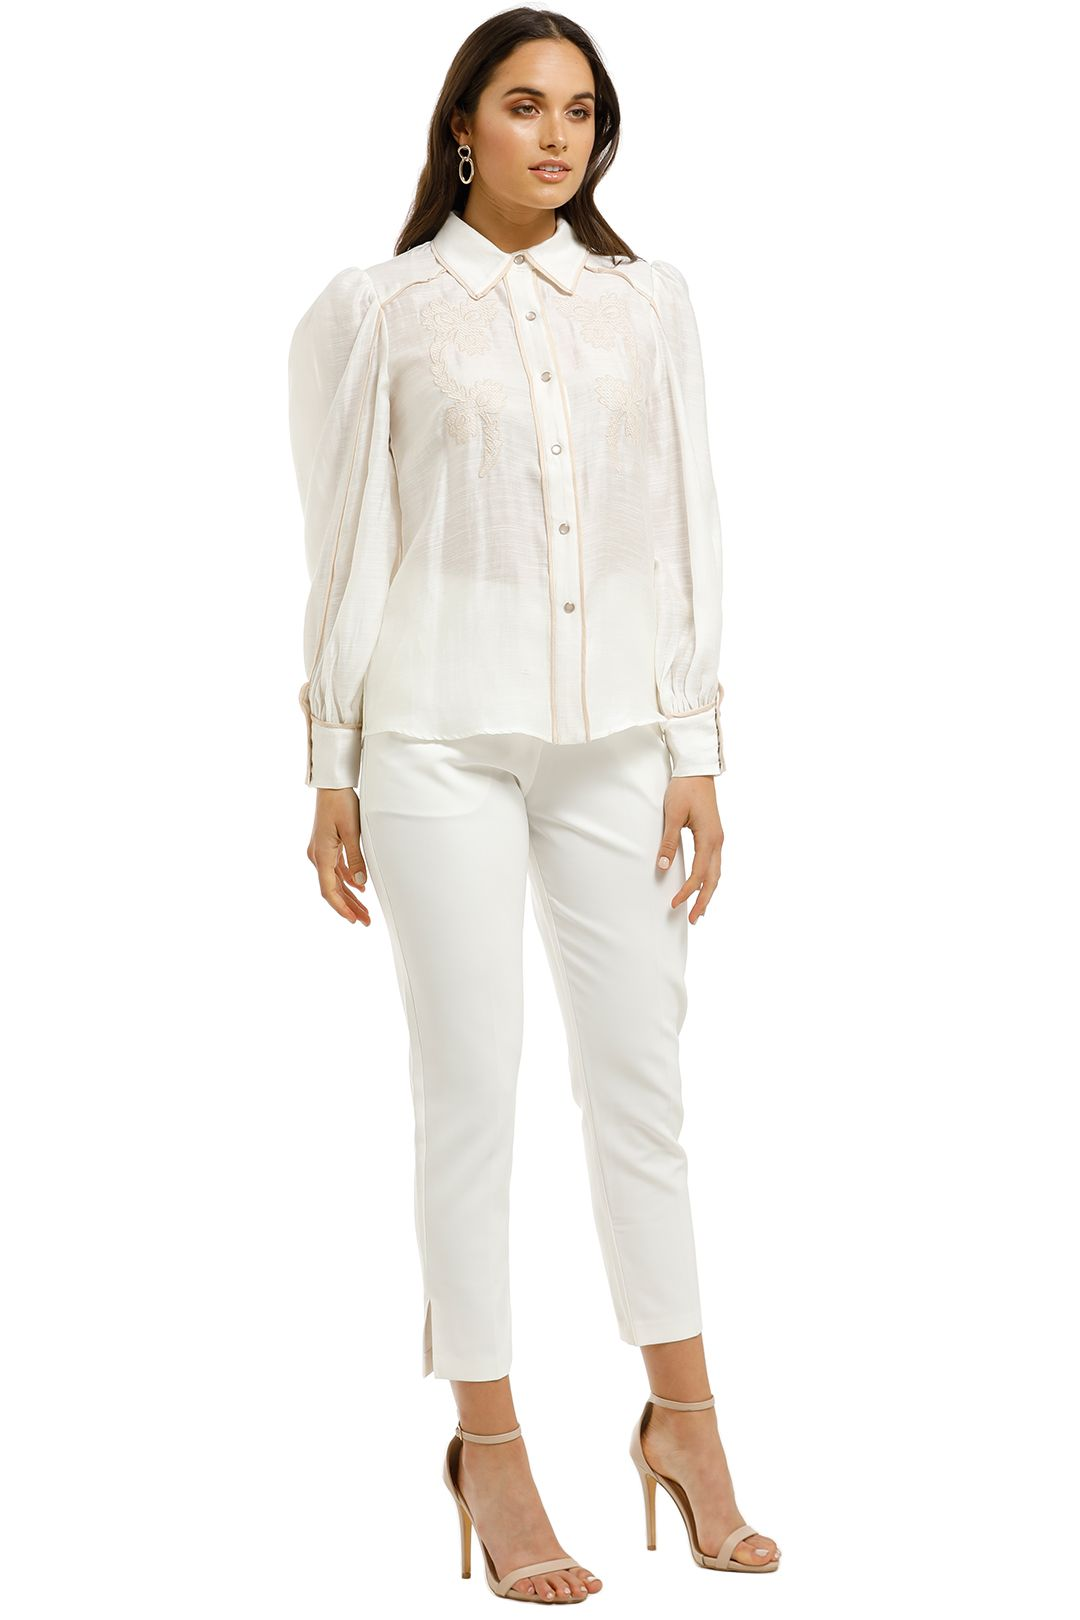 CMEO-Collective-Nearby-Shirt-Ivory-Side